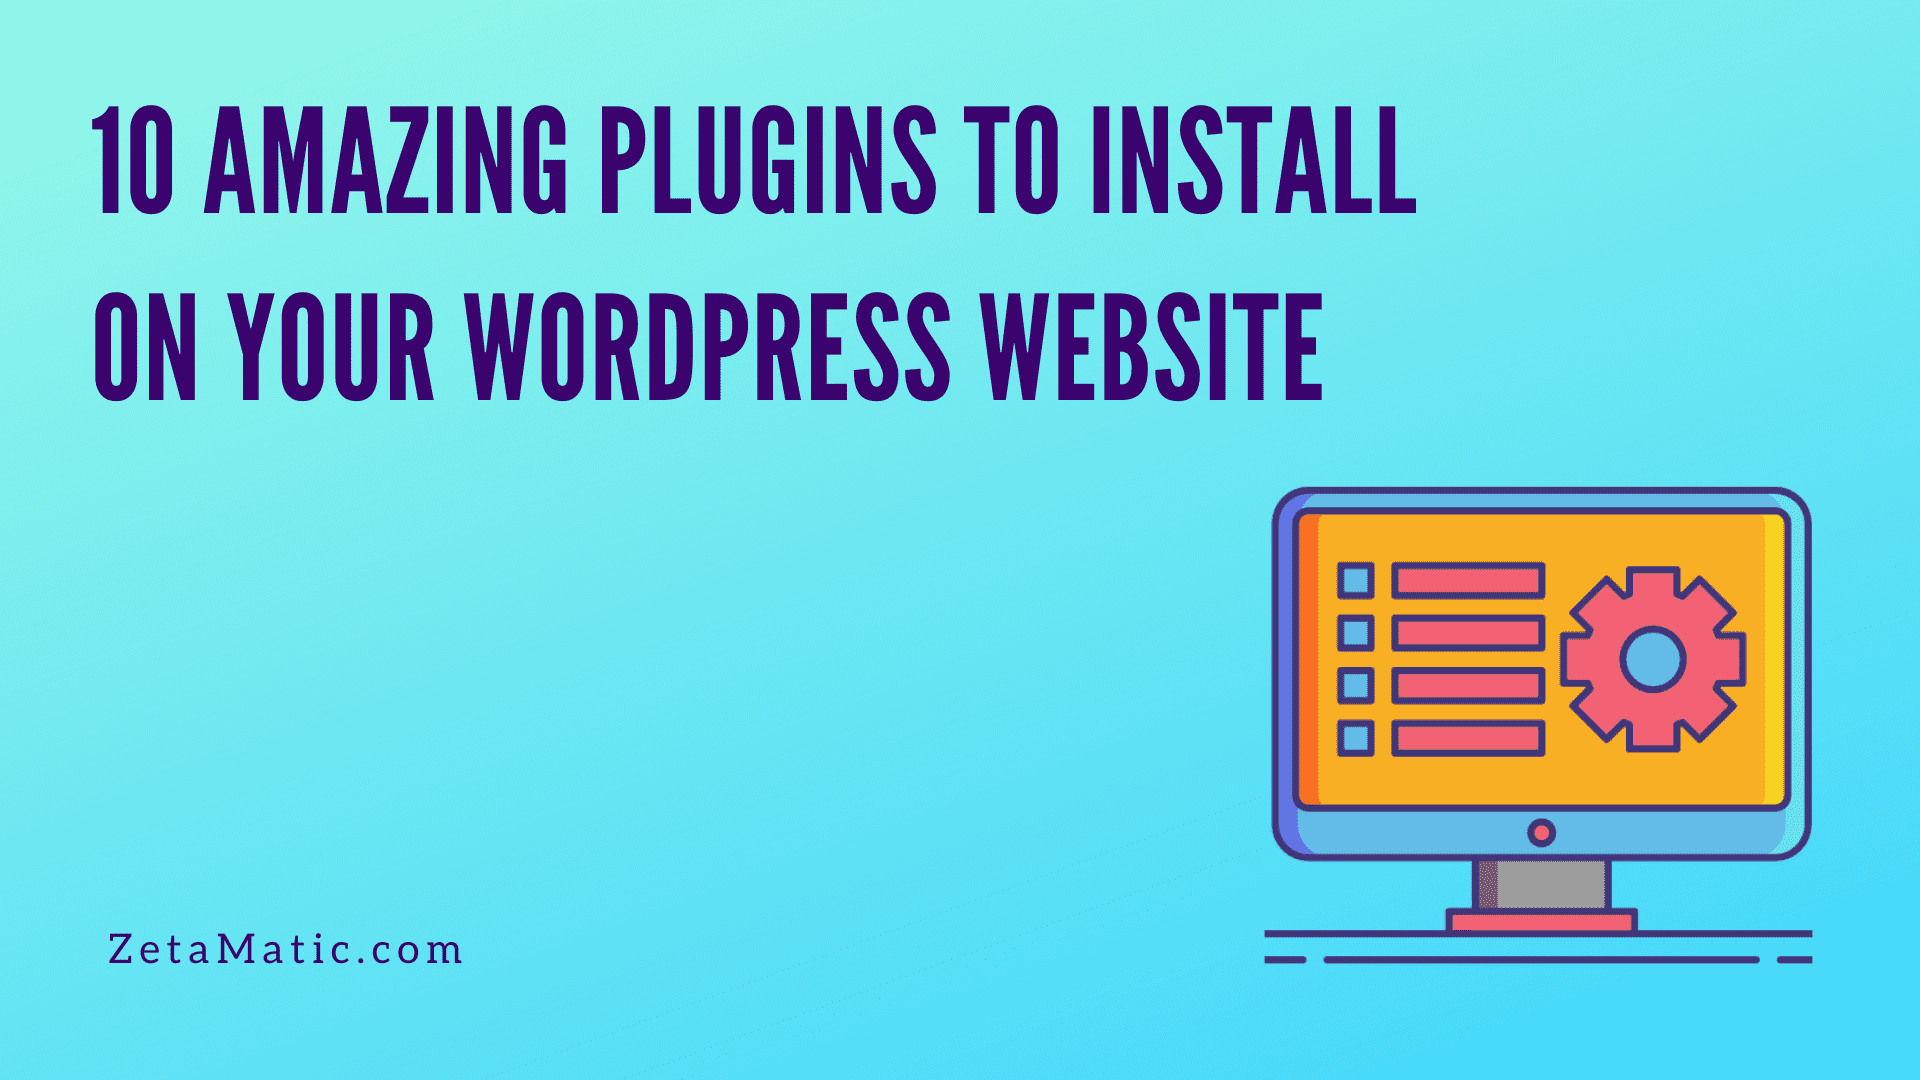 10 Amazing Plugins to Install on Your WordPress Website